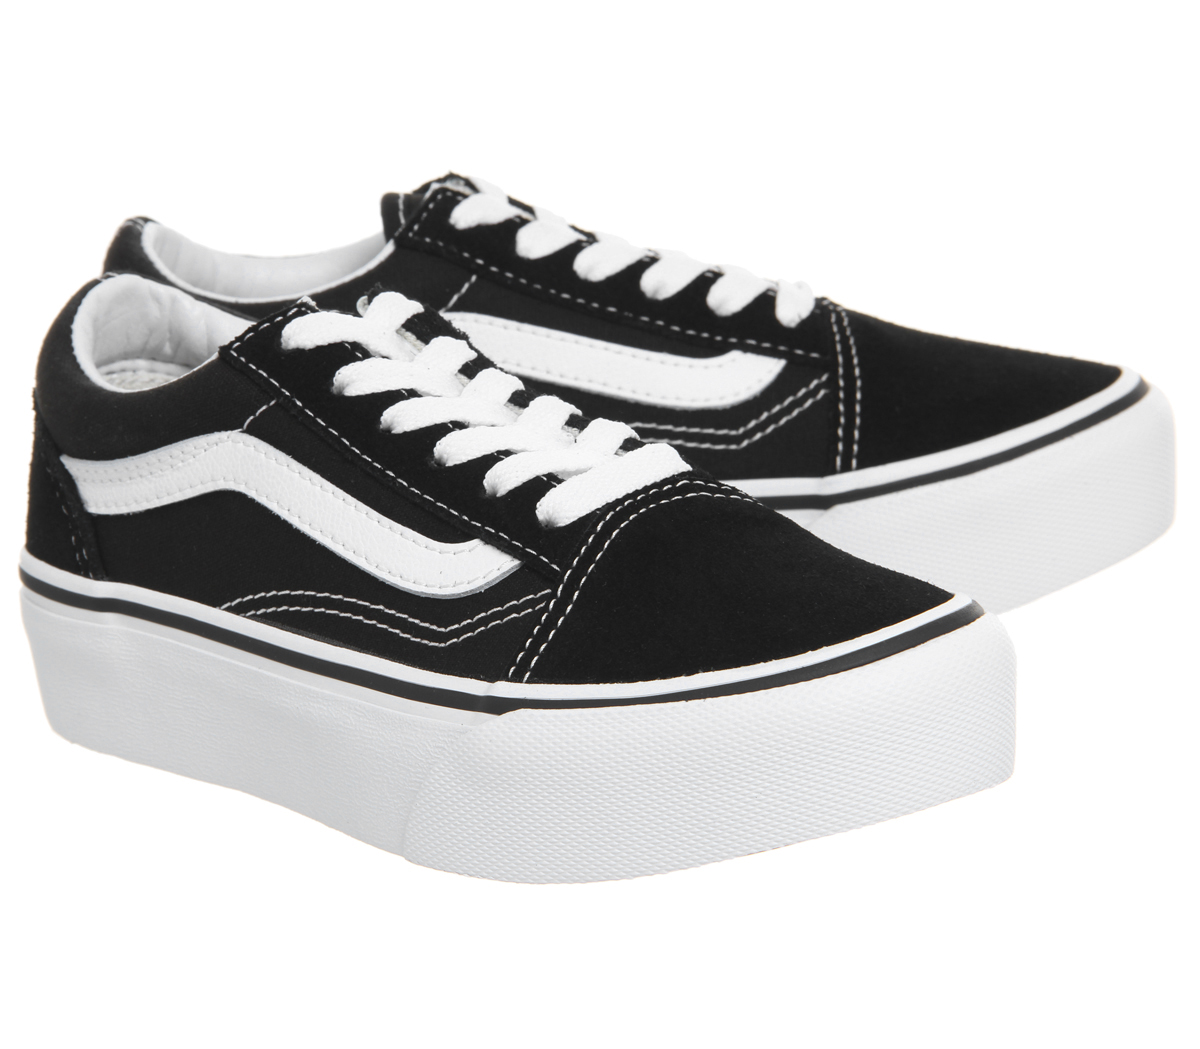 4d709725554 Kids Vans Old Skool Platform K Black White Kids